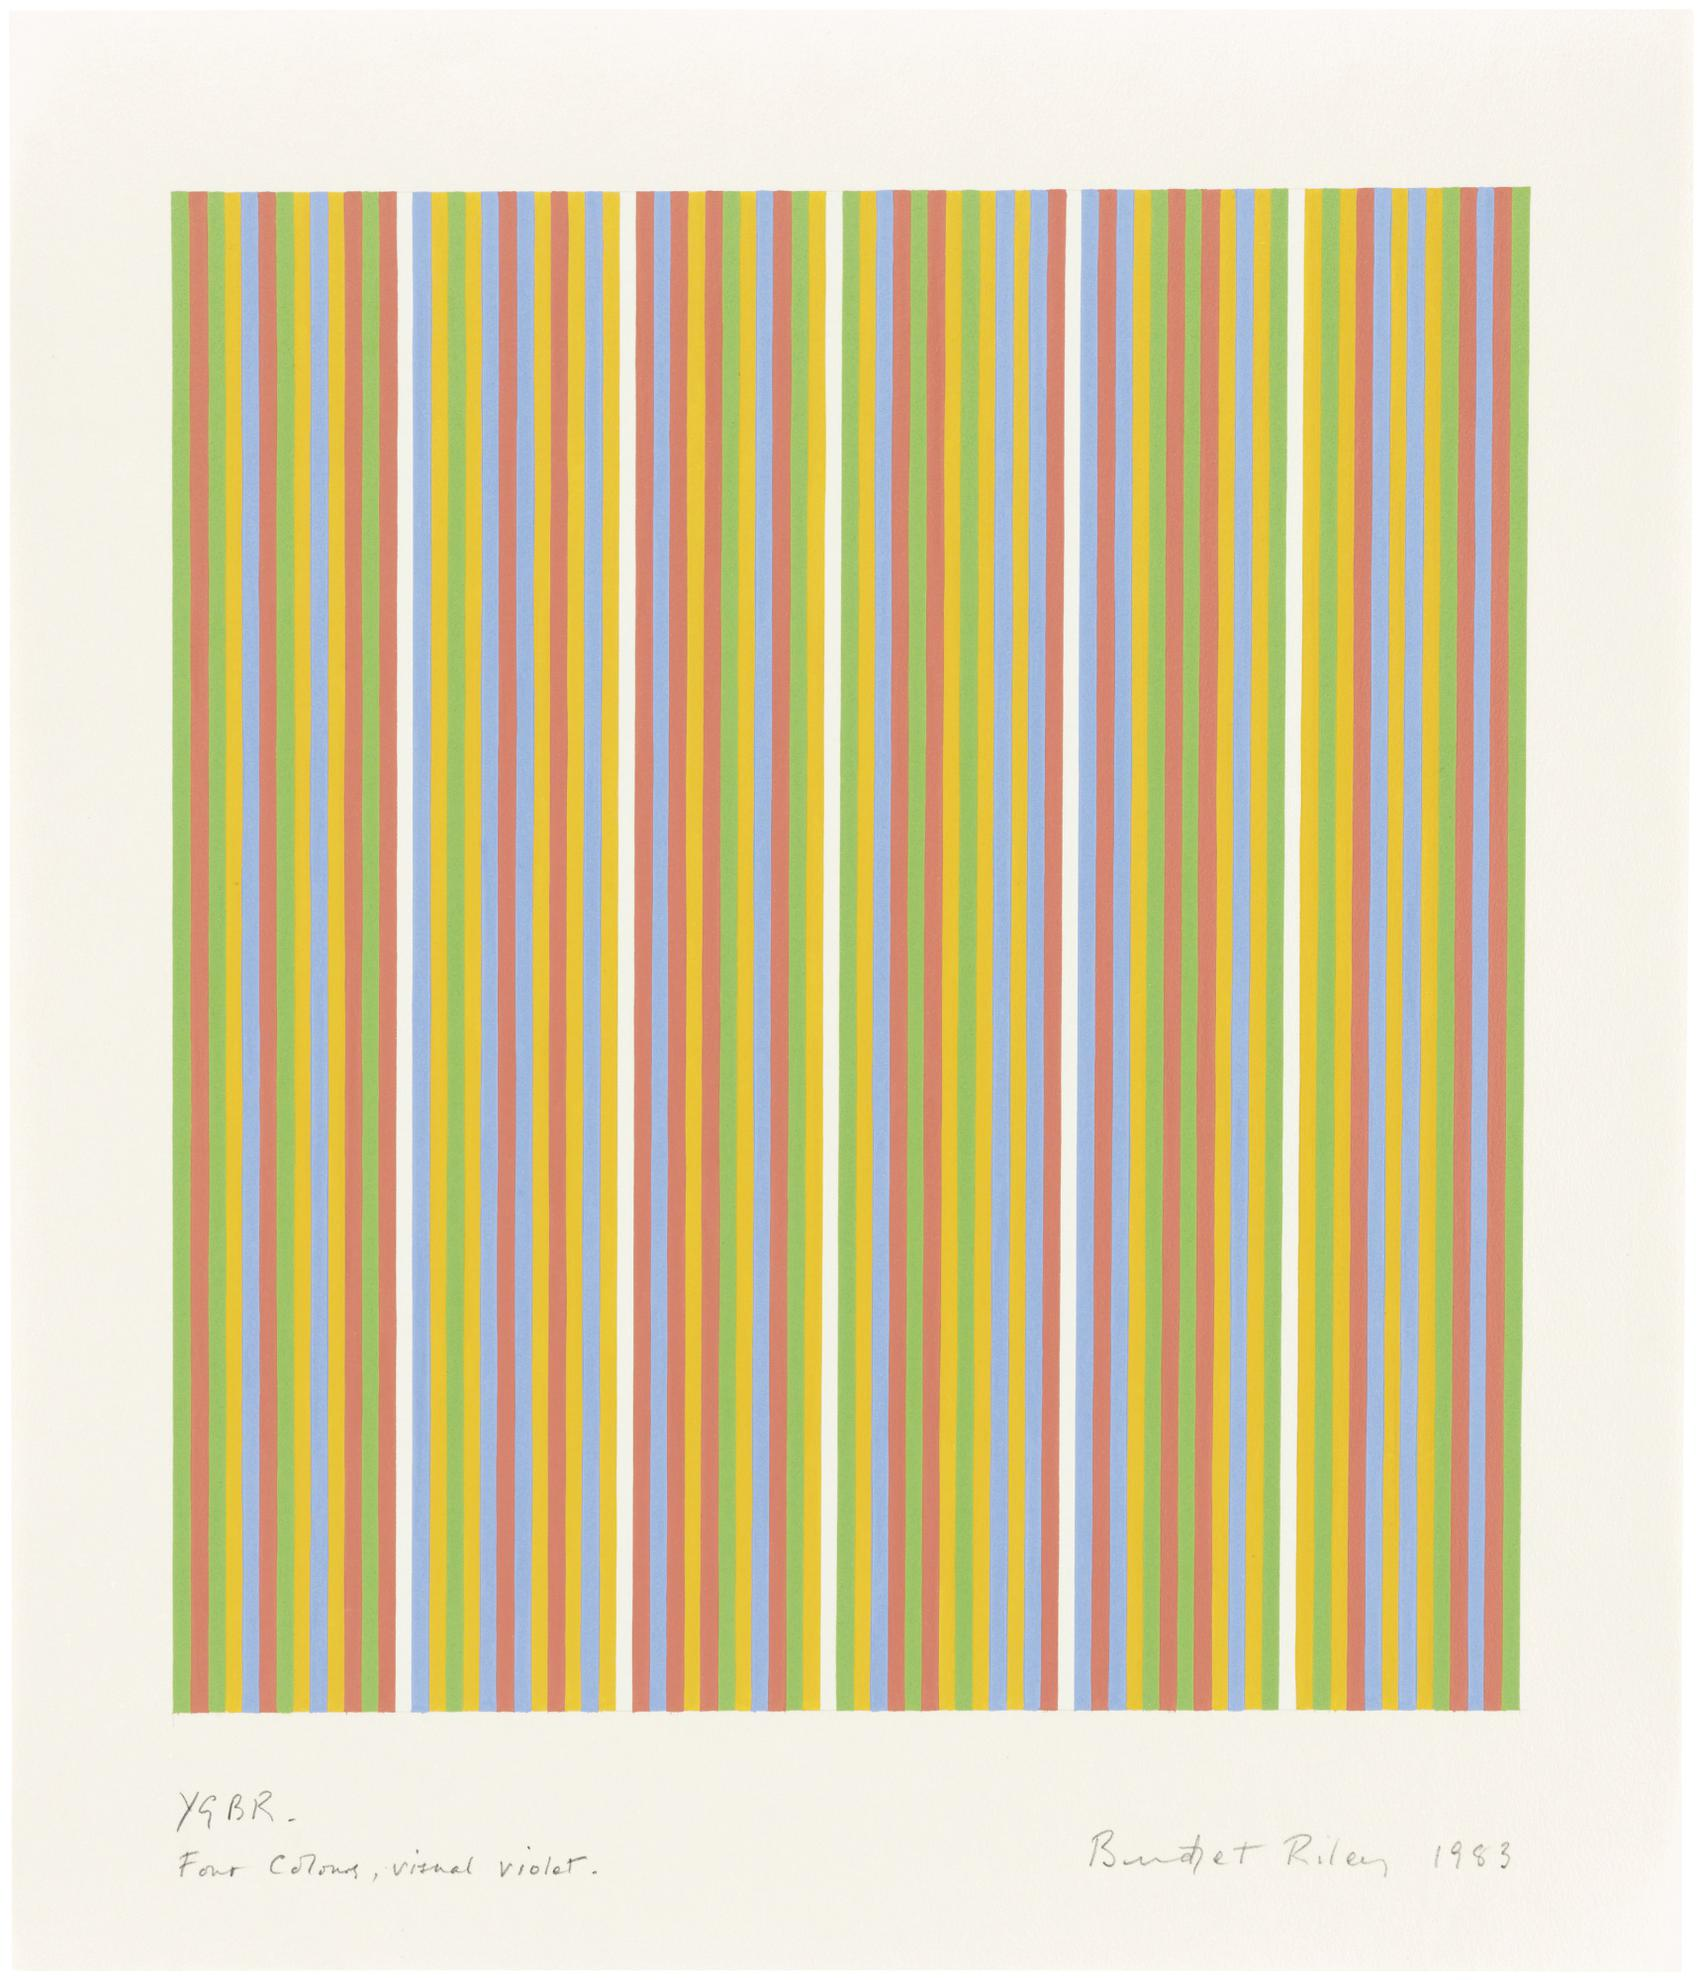 Bridget Riley-Ygbr. Four Colours, Visual Violet-1983